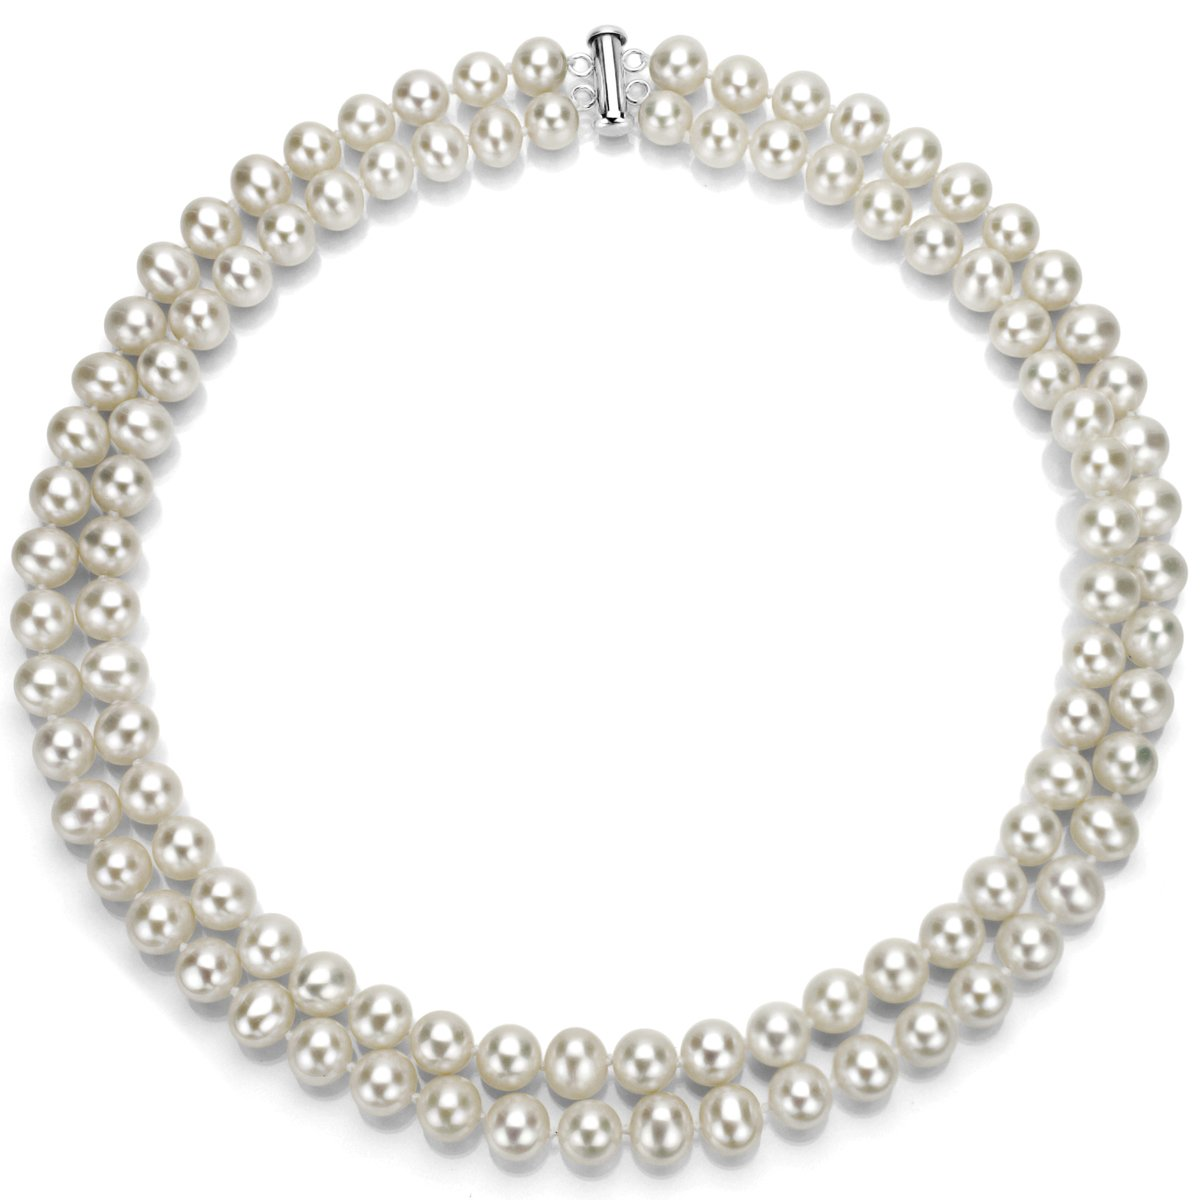 Sterling Silver 2-rows 6.5-7mm White Freshwater Cultured High Luster Pearl Necklace, 17''